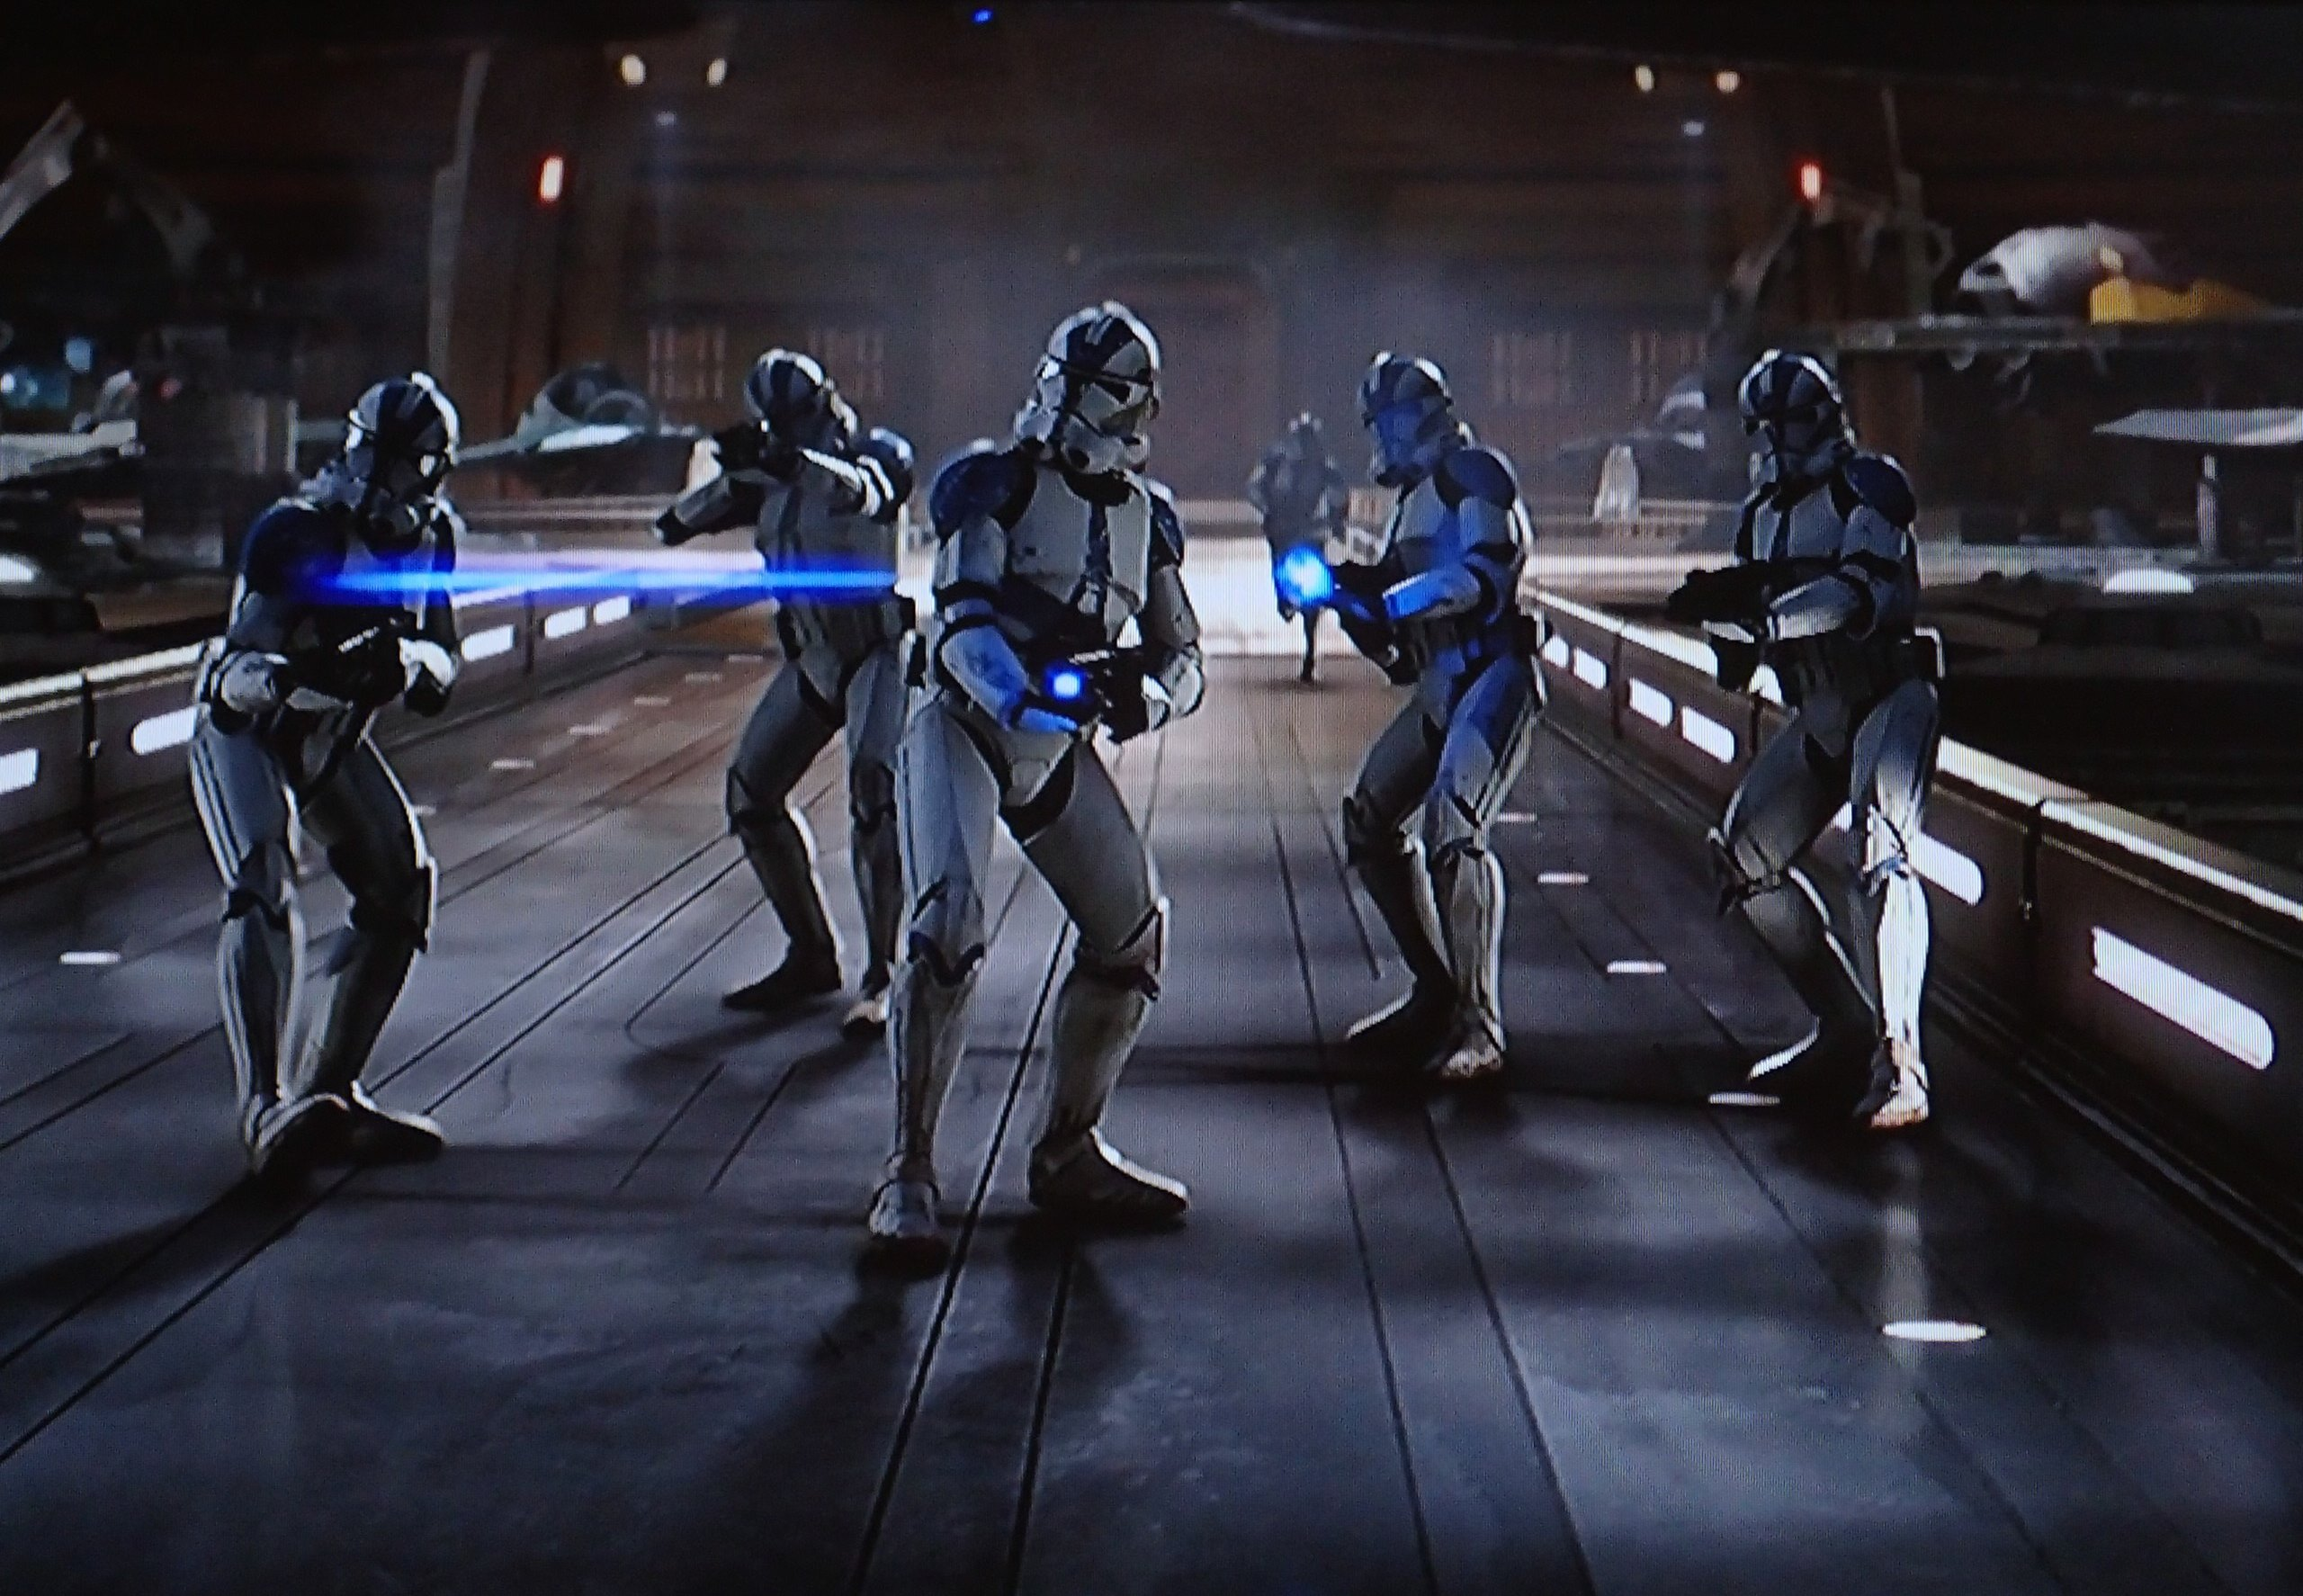 What is Disney's Mysterious New Star Wars Project? - Image 1